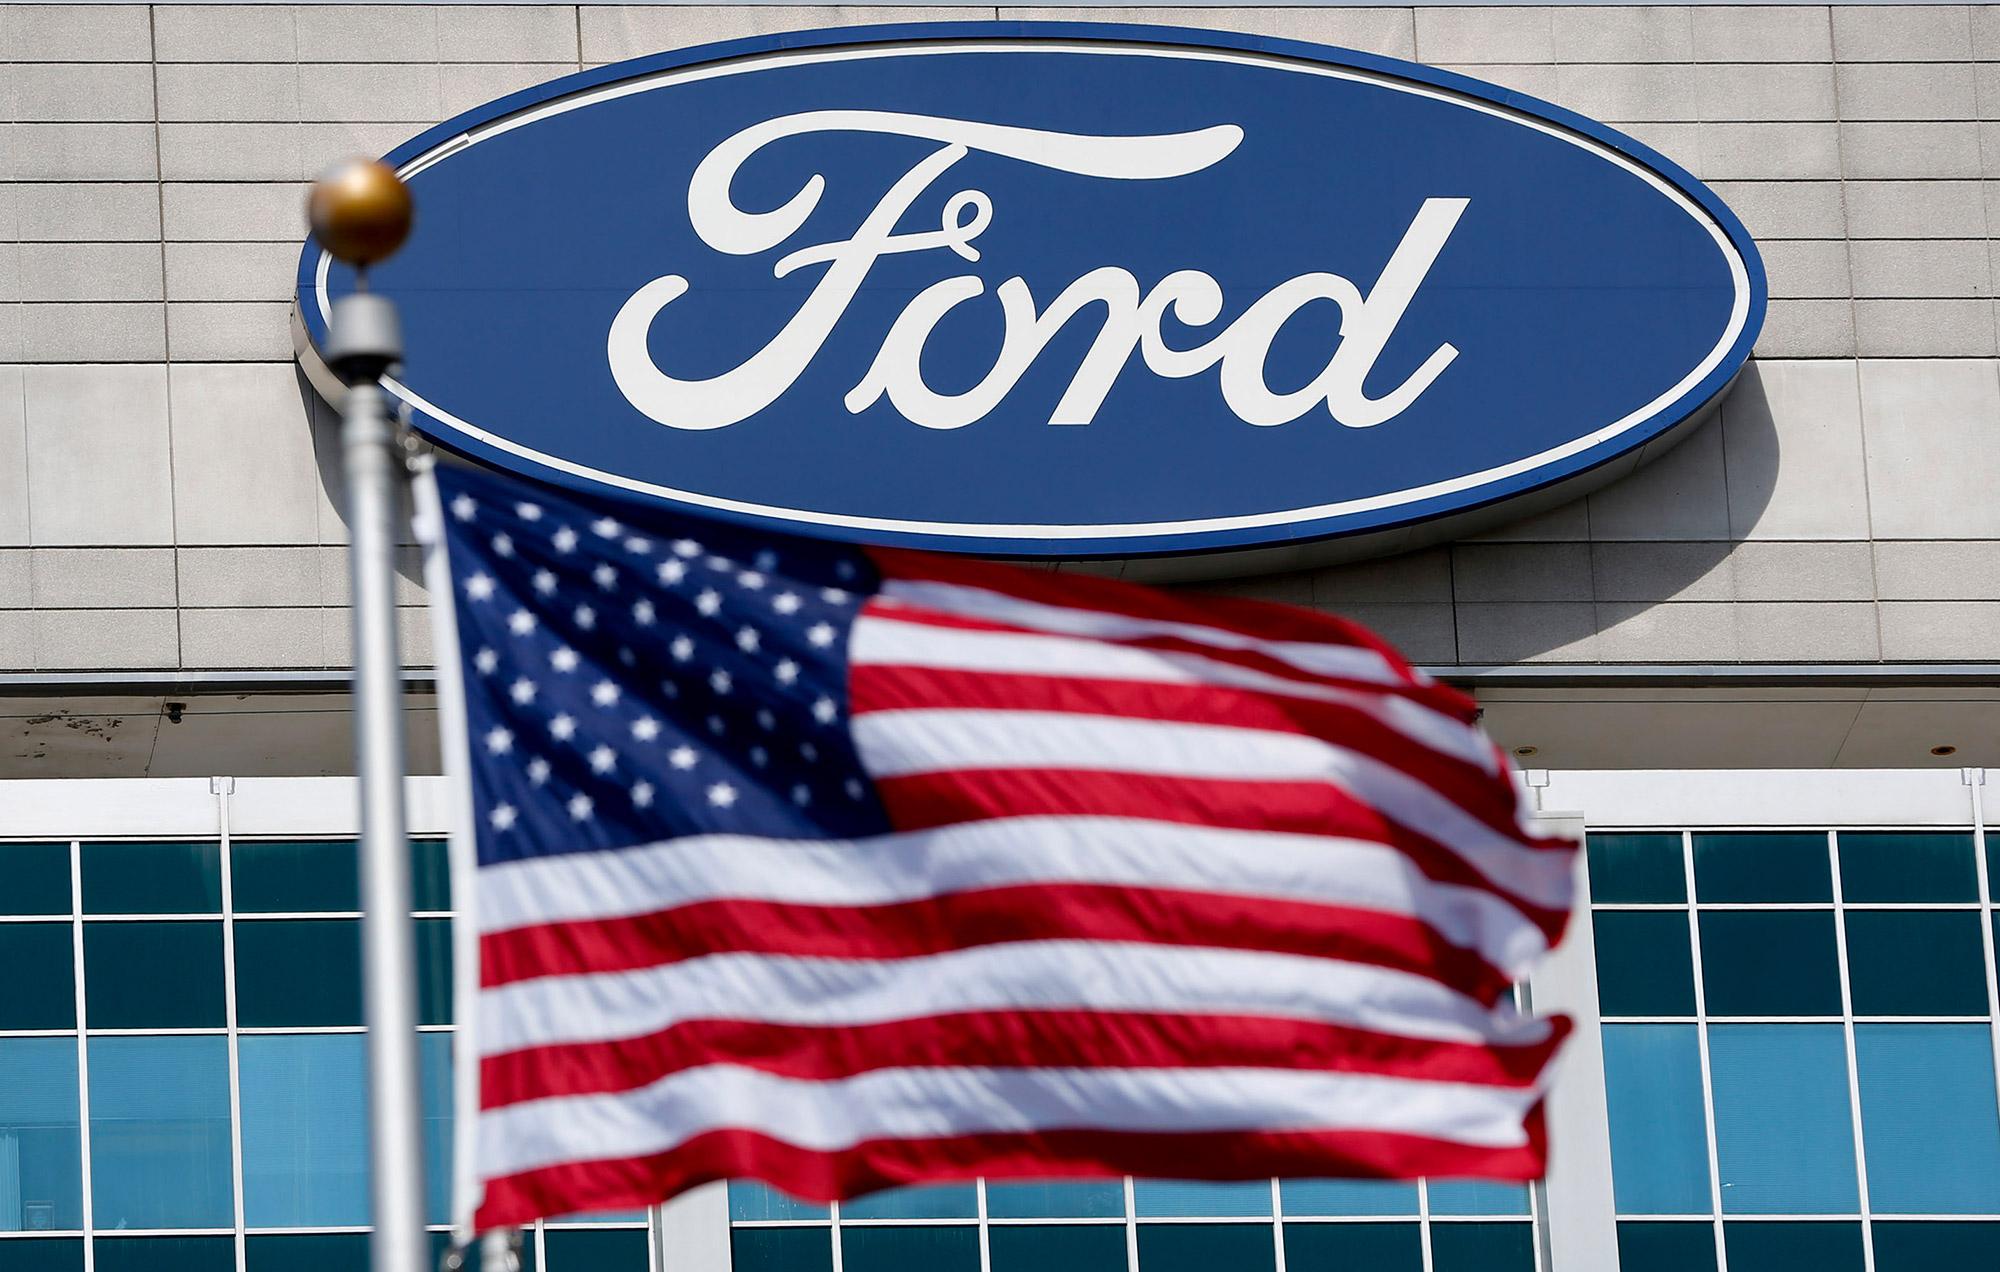 A U.S. flag flies at the Ford Motor Co. headquarters in Dearborn, Michigan, on March 18, 2015. (Jeff Kowalsky/Bloomberg via Getty Images)